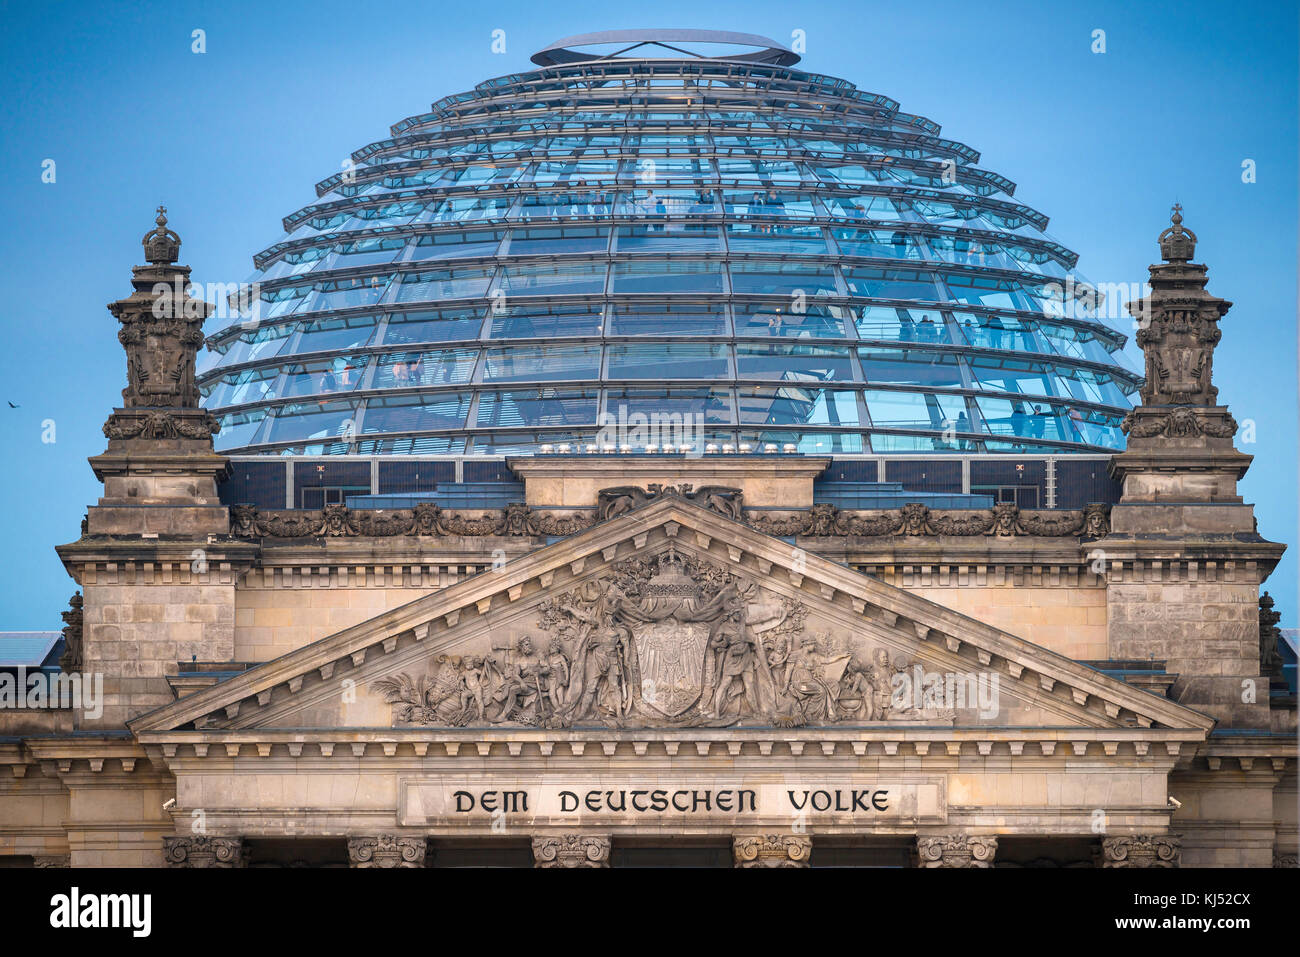 Berlin Reichstag, close-up view of the pediment and glass dome of the Reichstag building in Berlin, Germany. - Stock Image